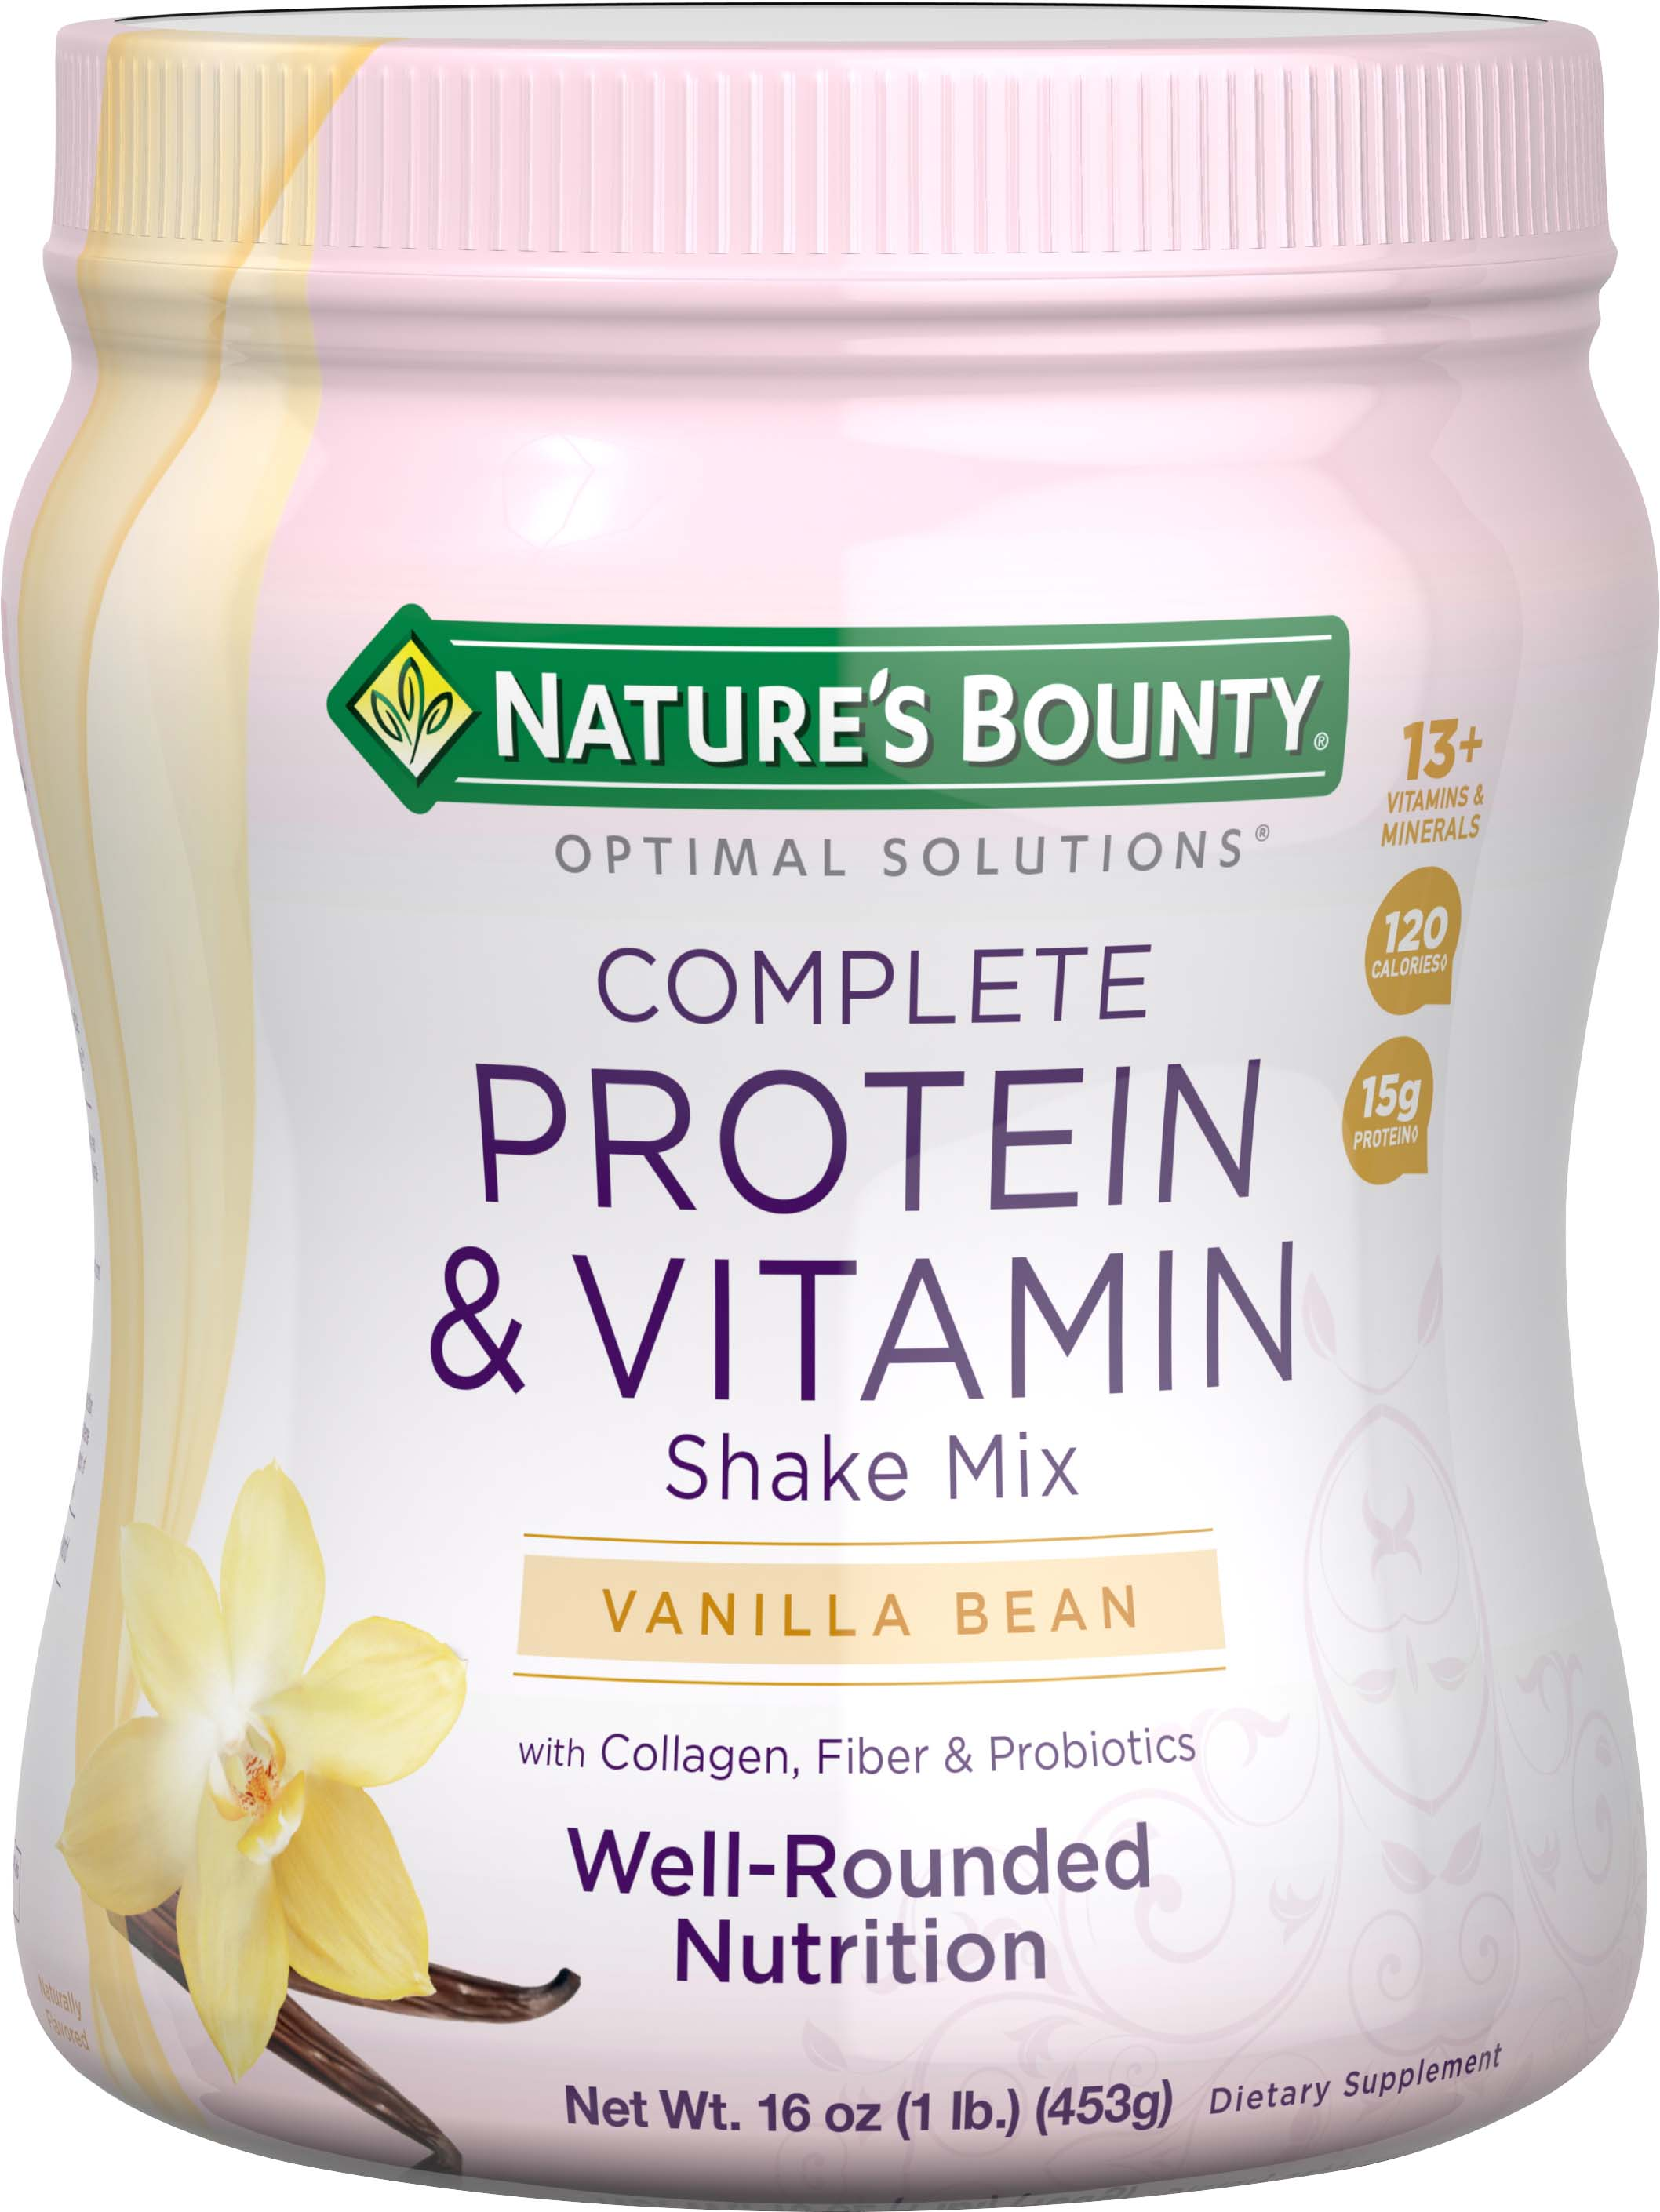 NATURES BOUNTY OPTIMAL SOLUTIONS COMPLETE PROTEIN & VITAMIN SHAKE MIX